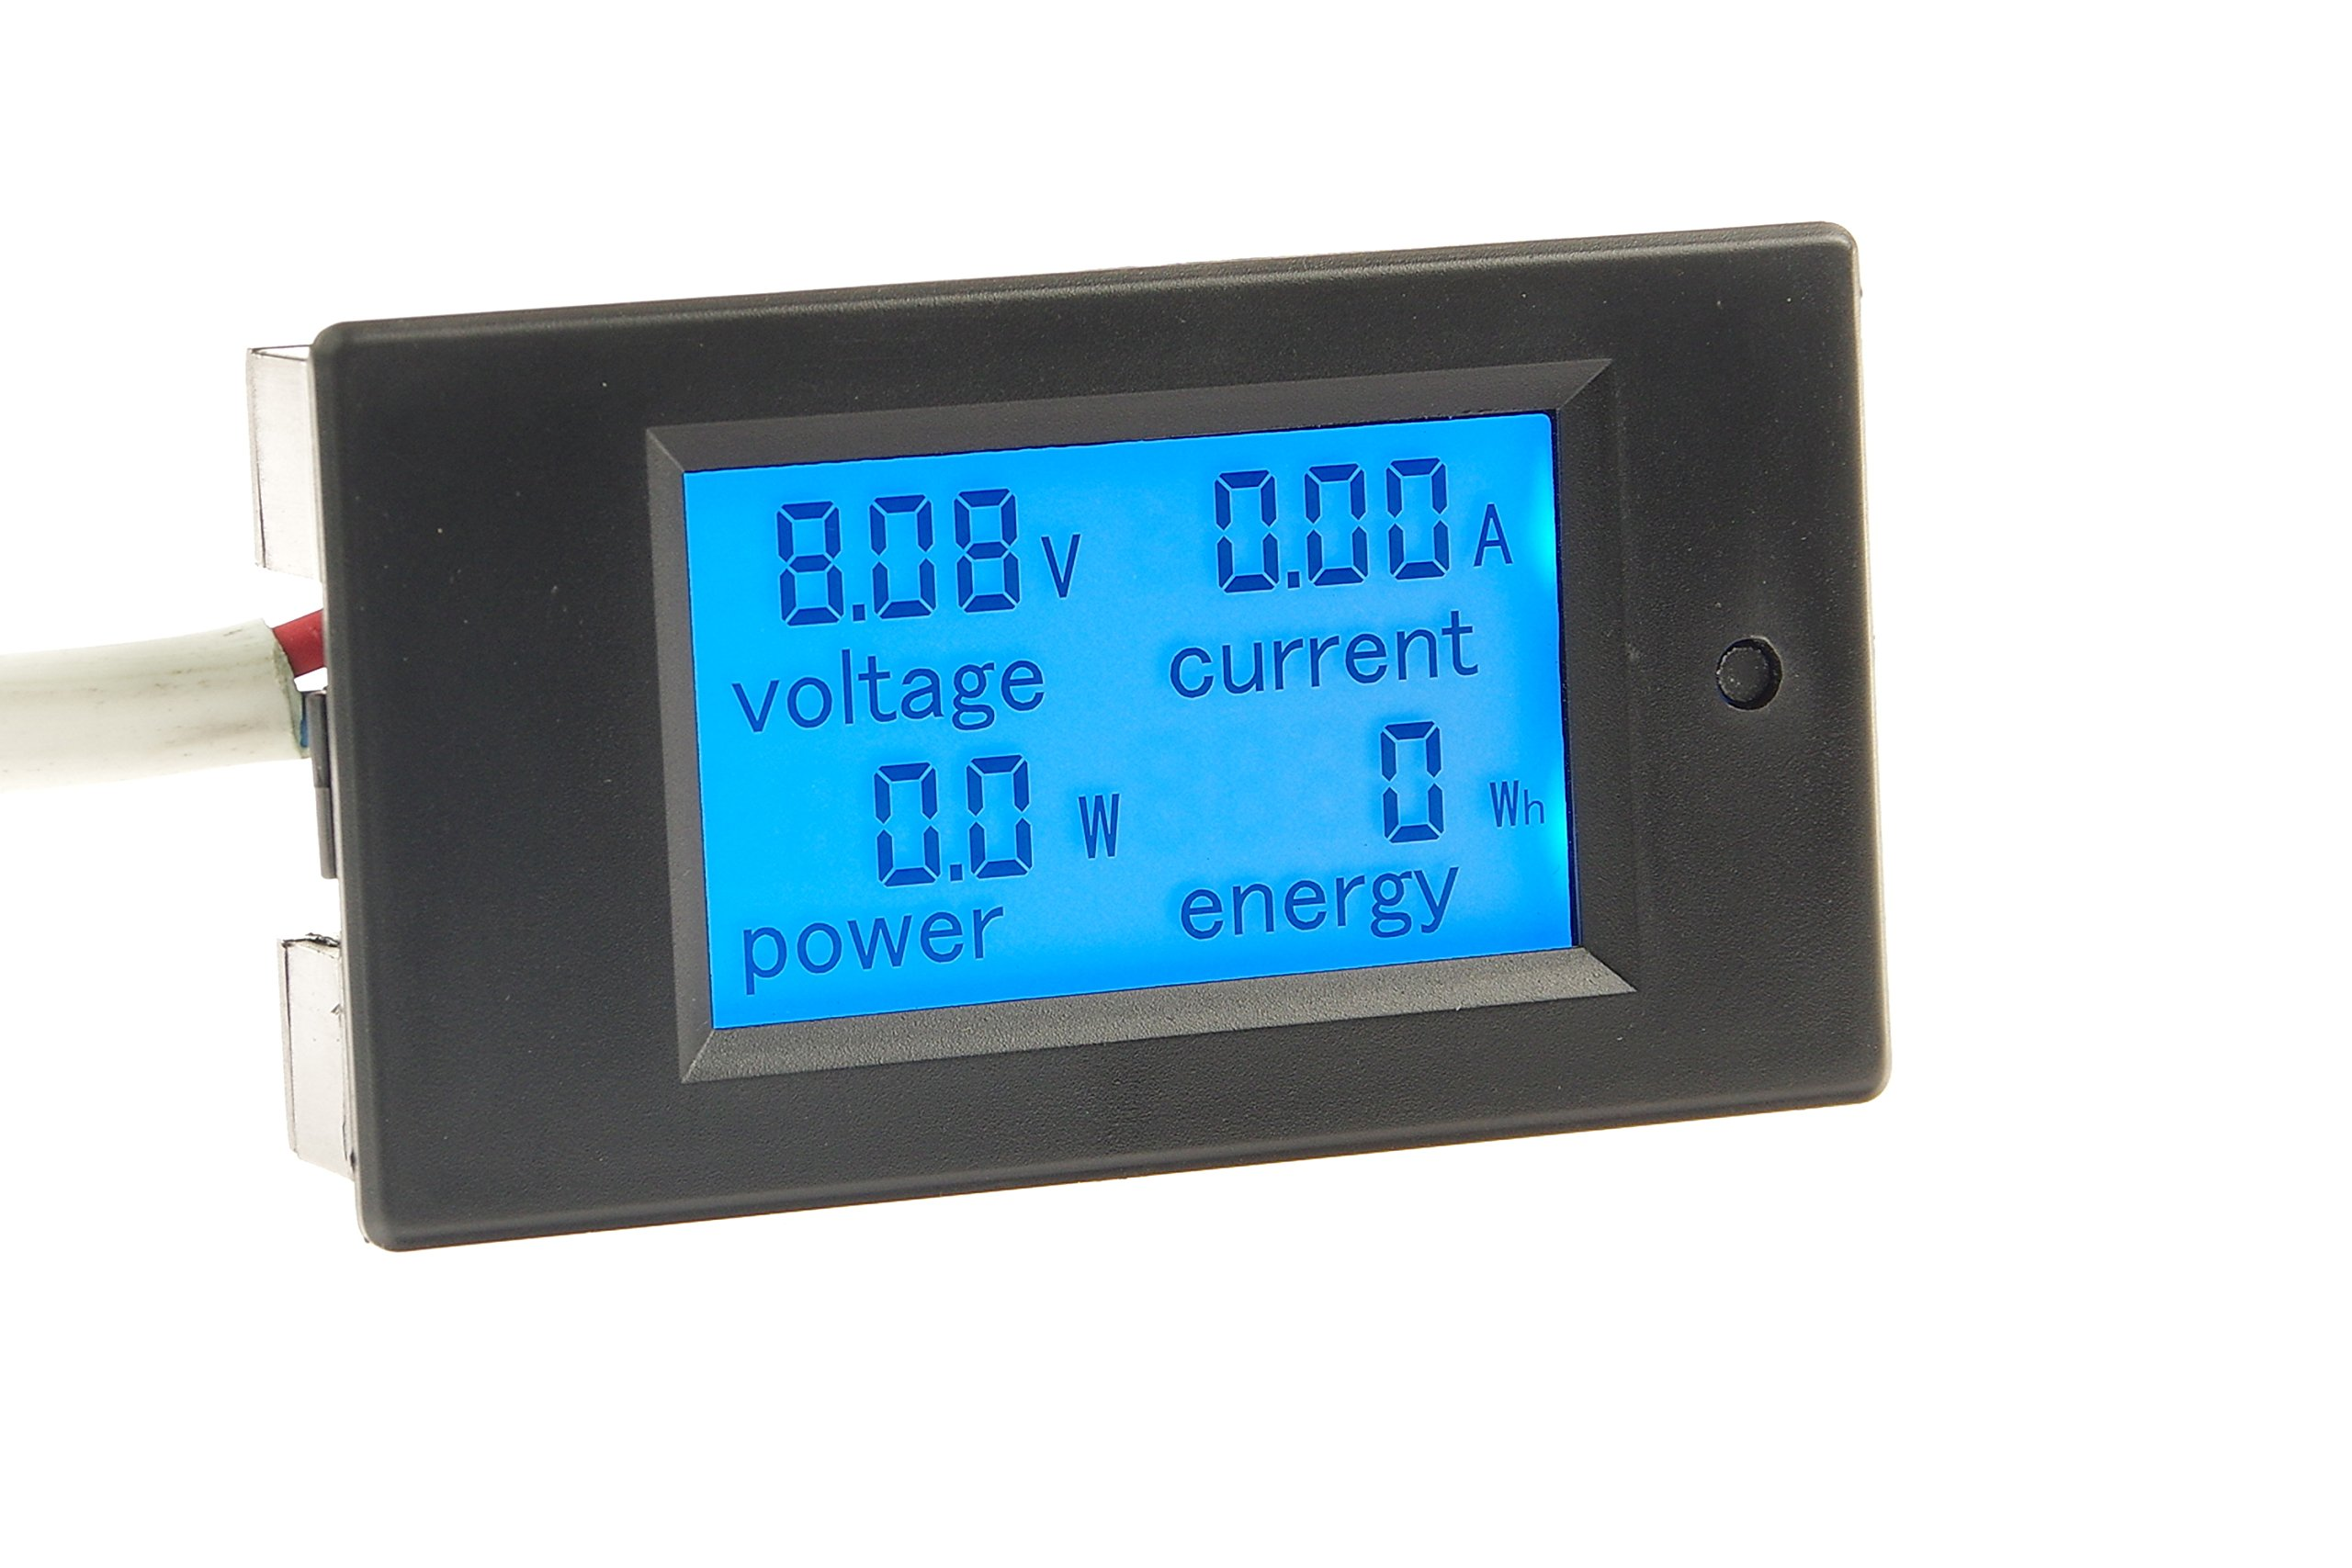 KNACRO DC 6.5-100V 0-50A LCD Display Digital Current Voltage Power Energy Meter Multimeter Ammeter Voltmeter with 50A 75mv Current Shunt